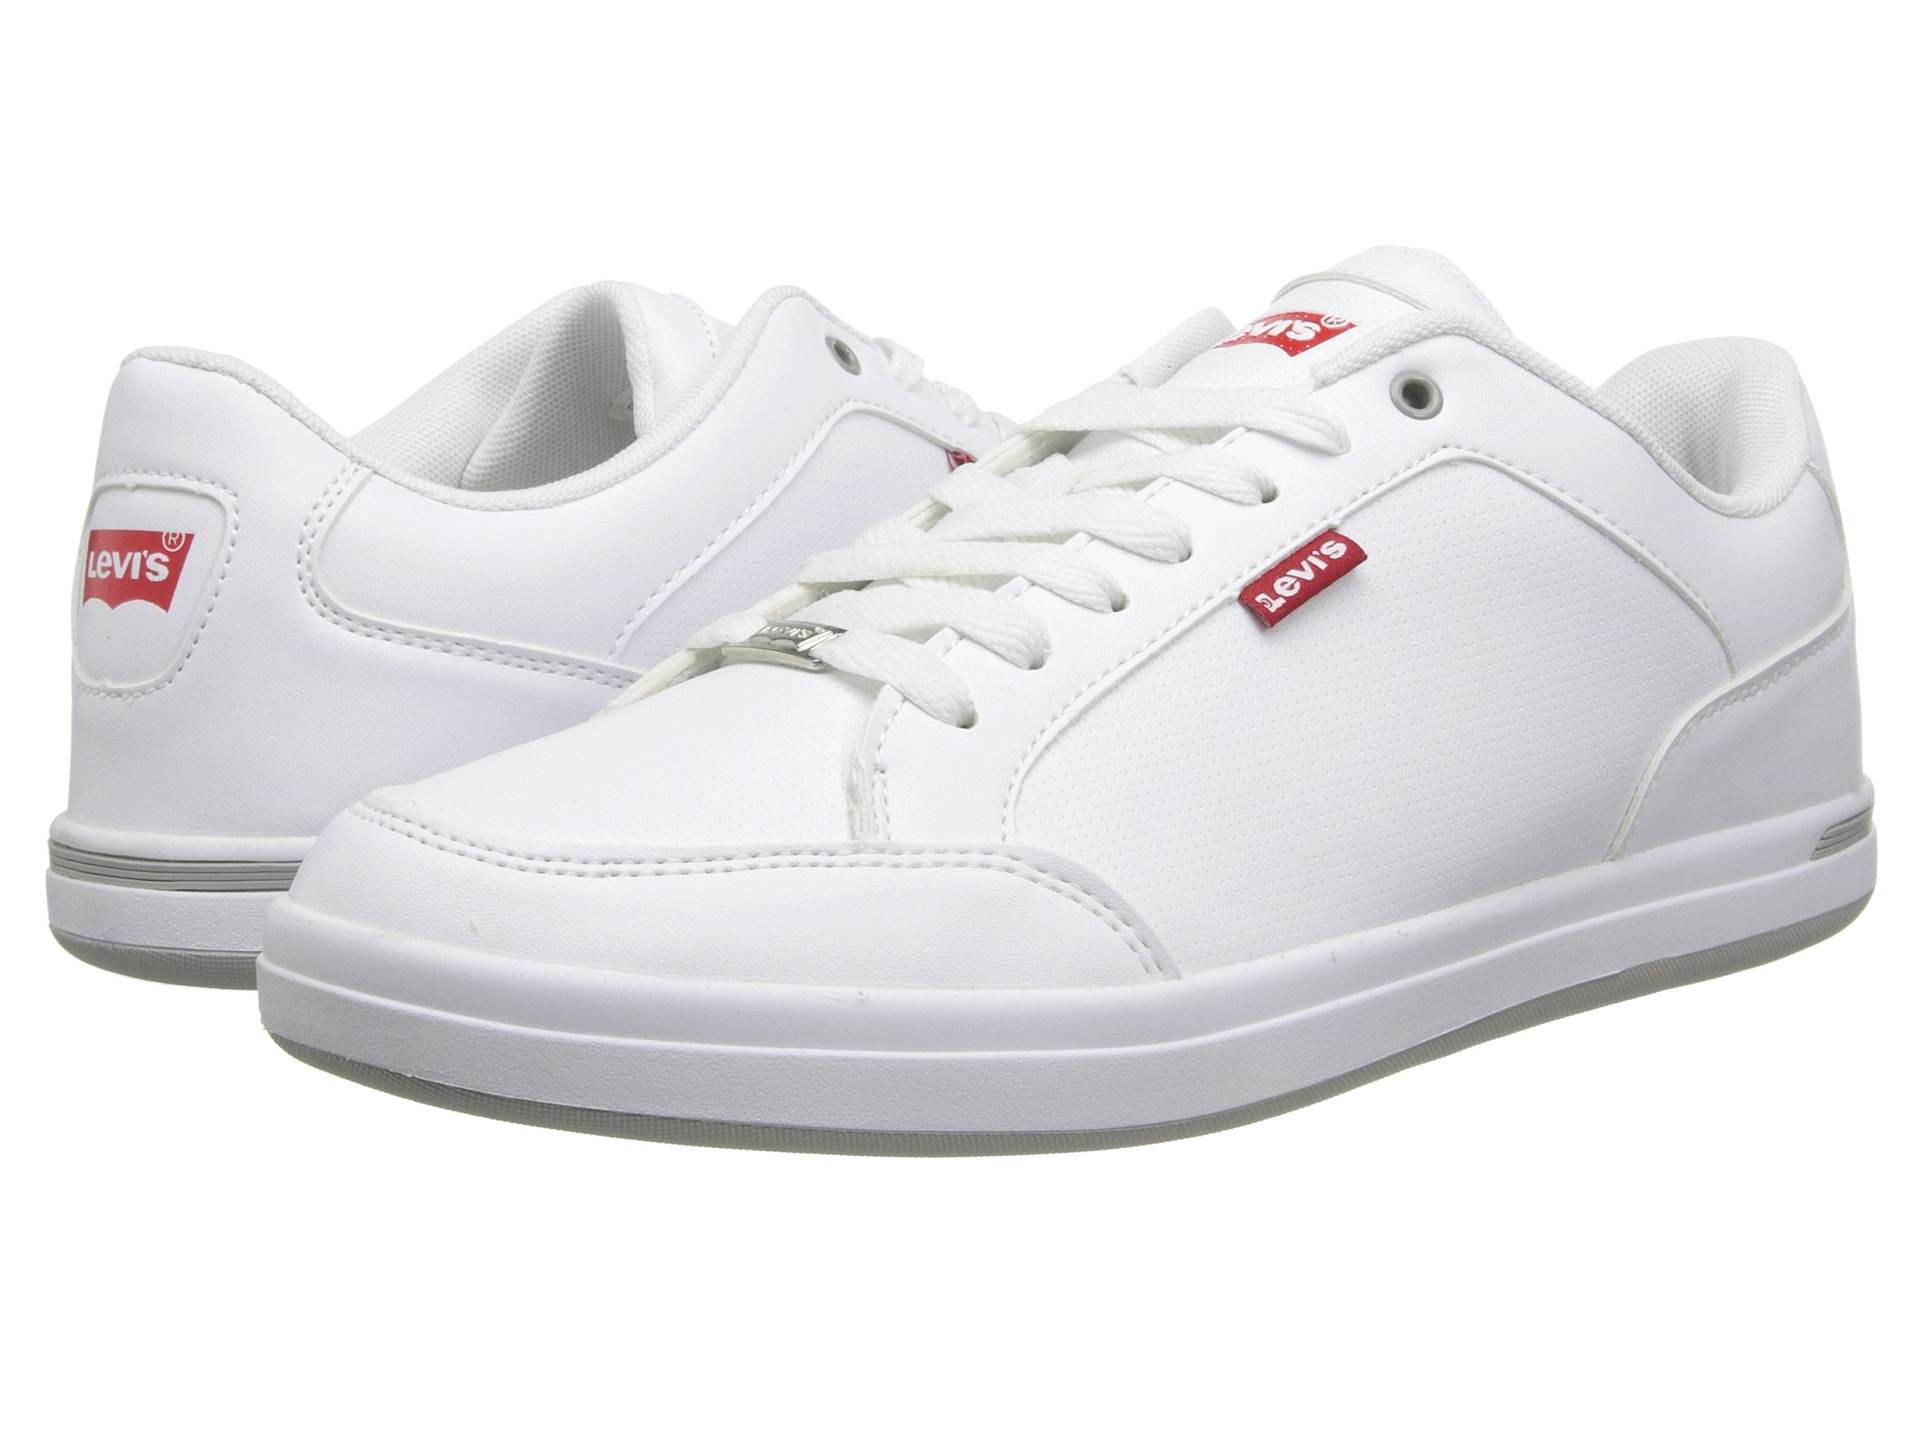 How To Clean Levis White Shoes